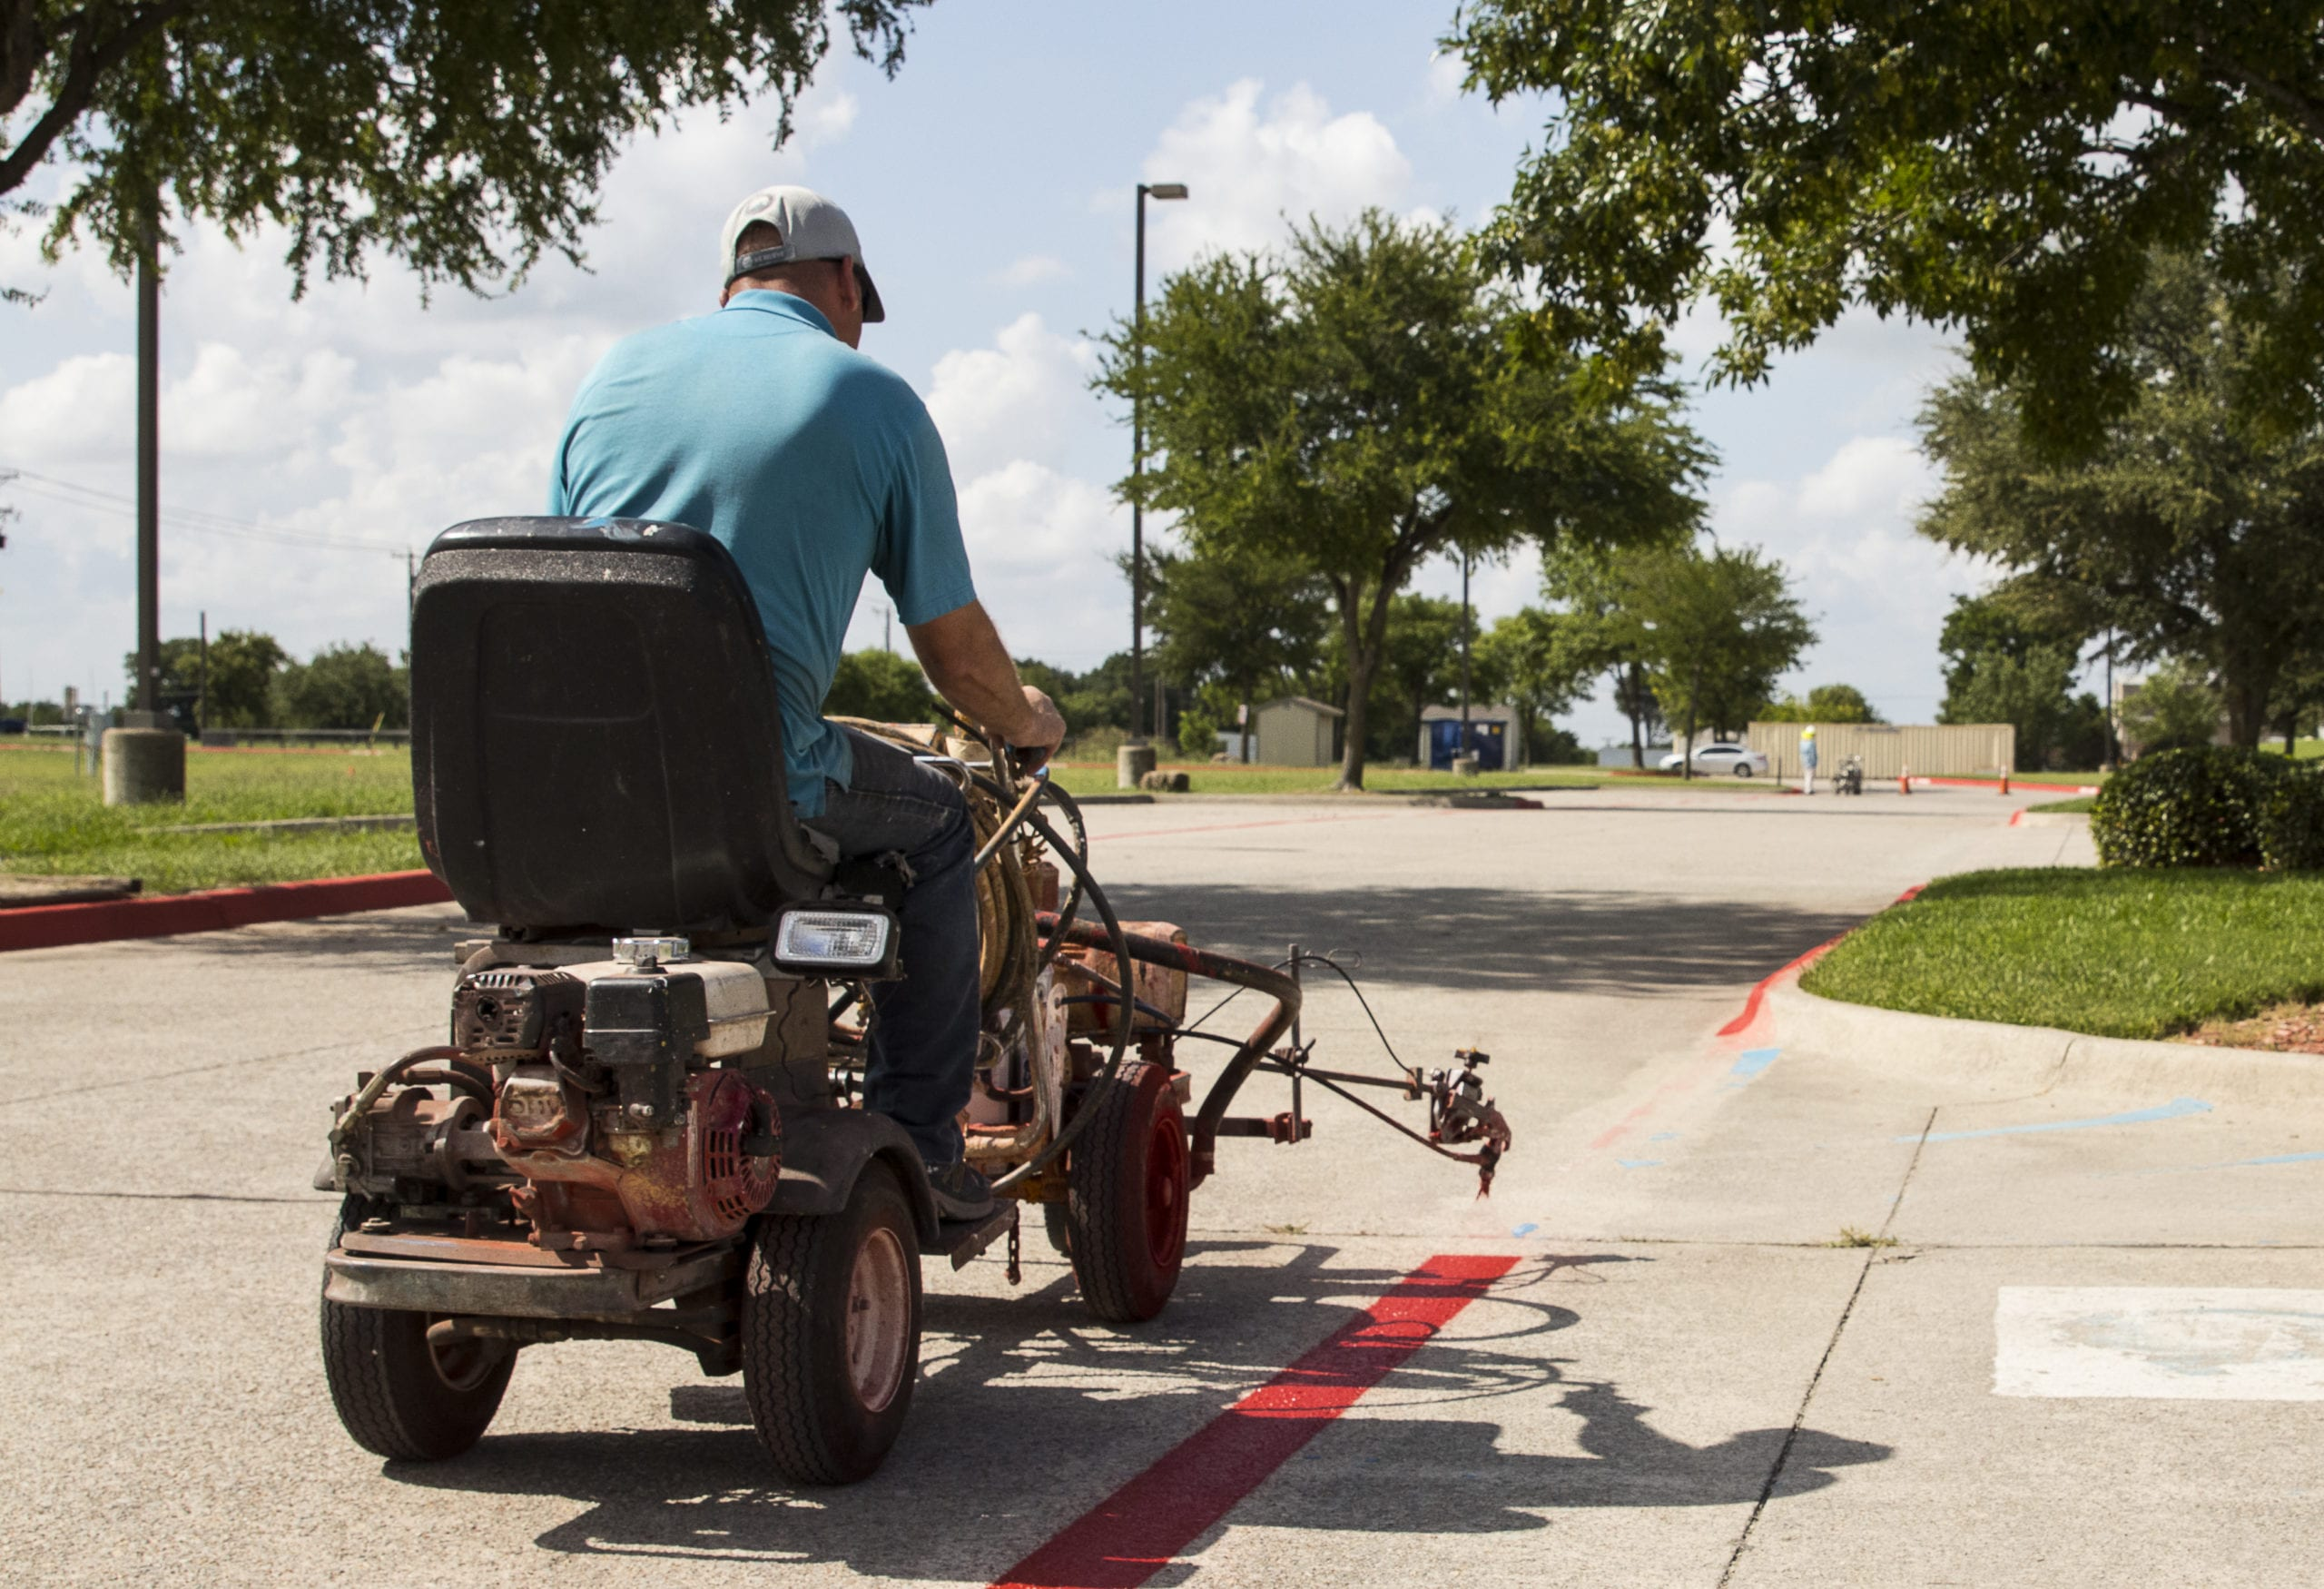 parking lot striping dallas tx commercial best company services near me texas parking lot striping company image 3.jpg